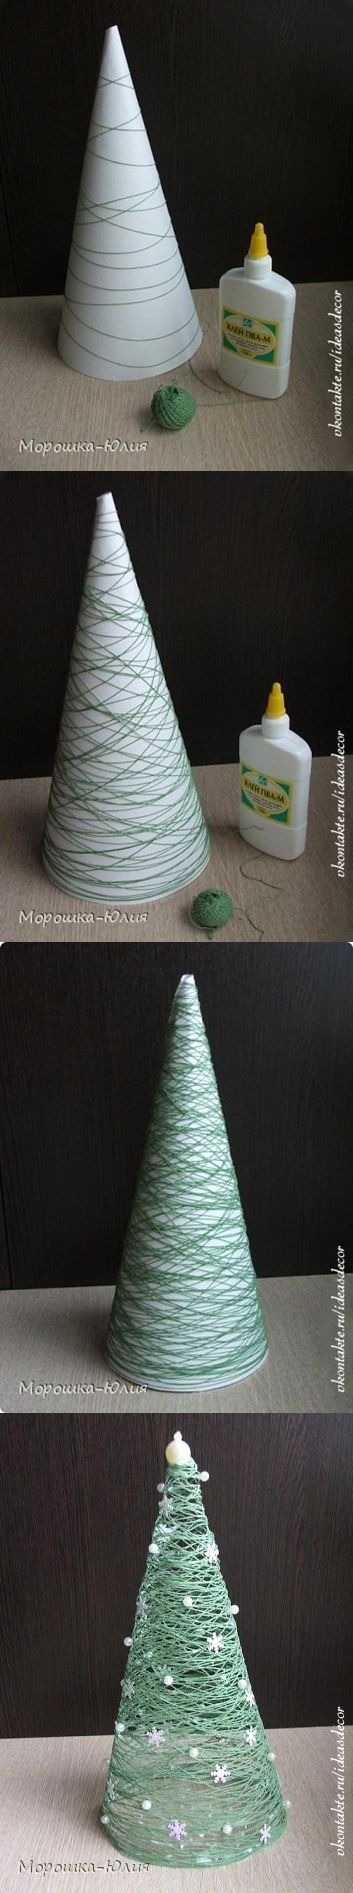 string Christmas trees - could put fairy lights inside too!